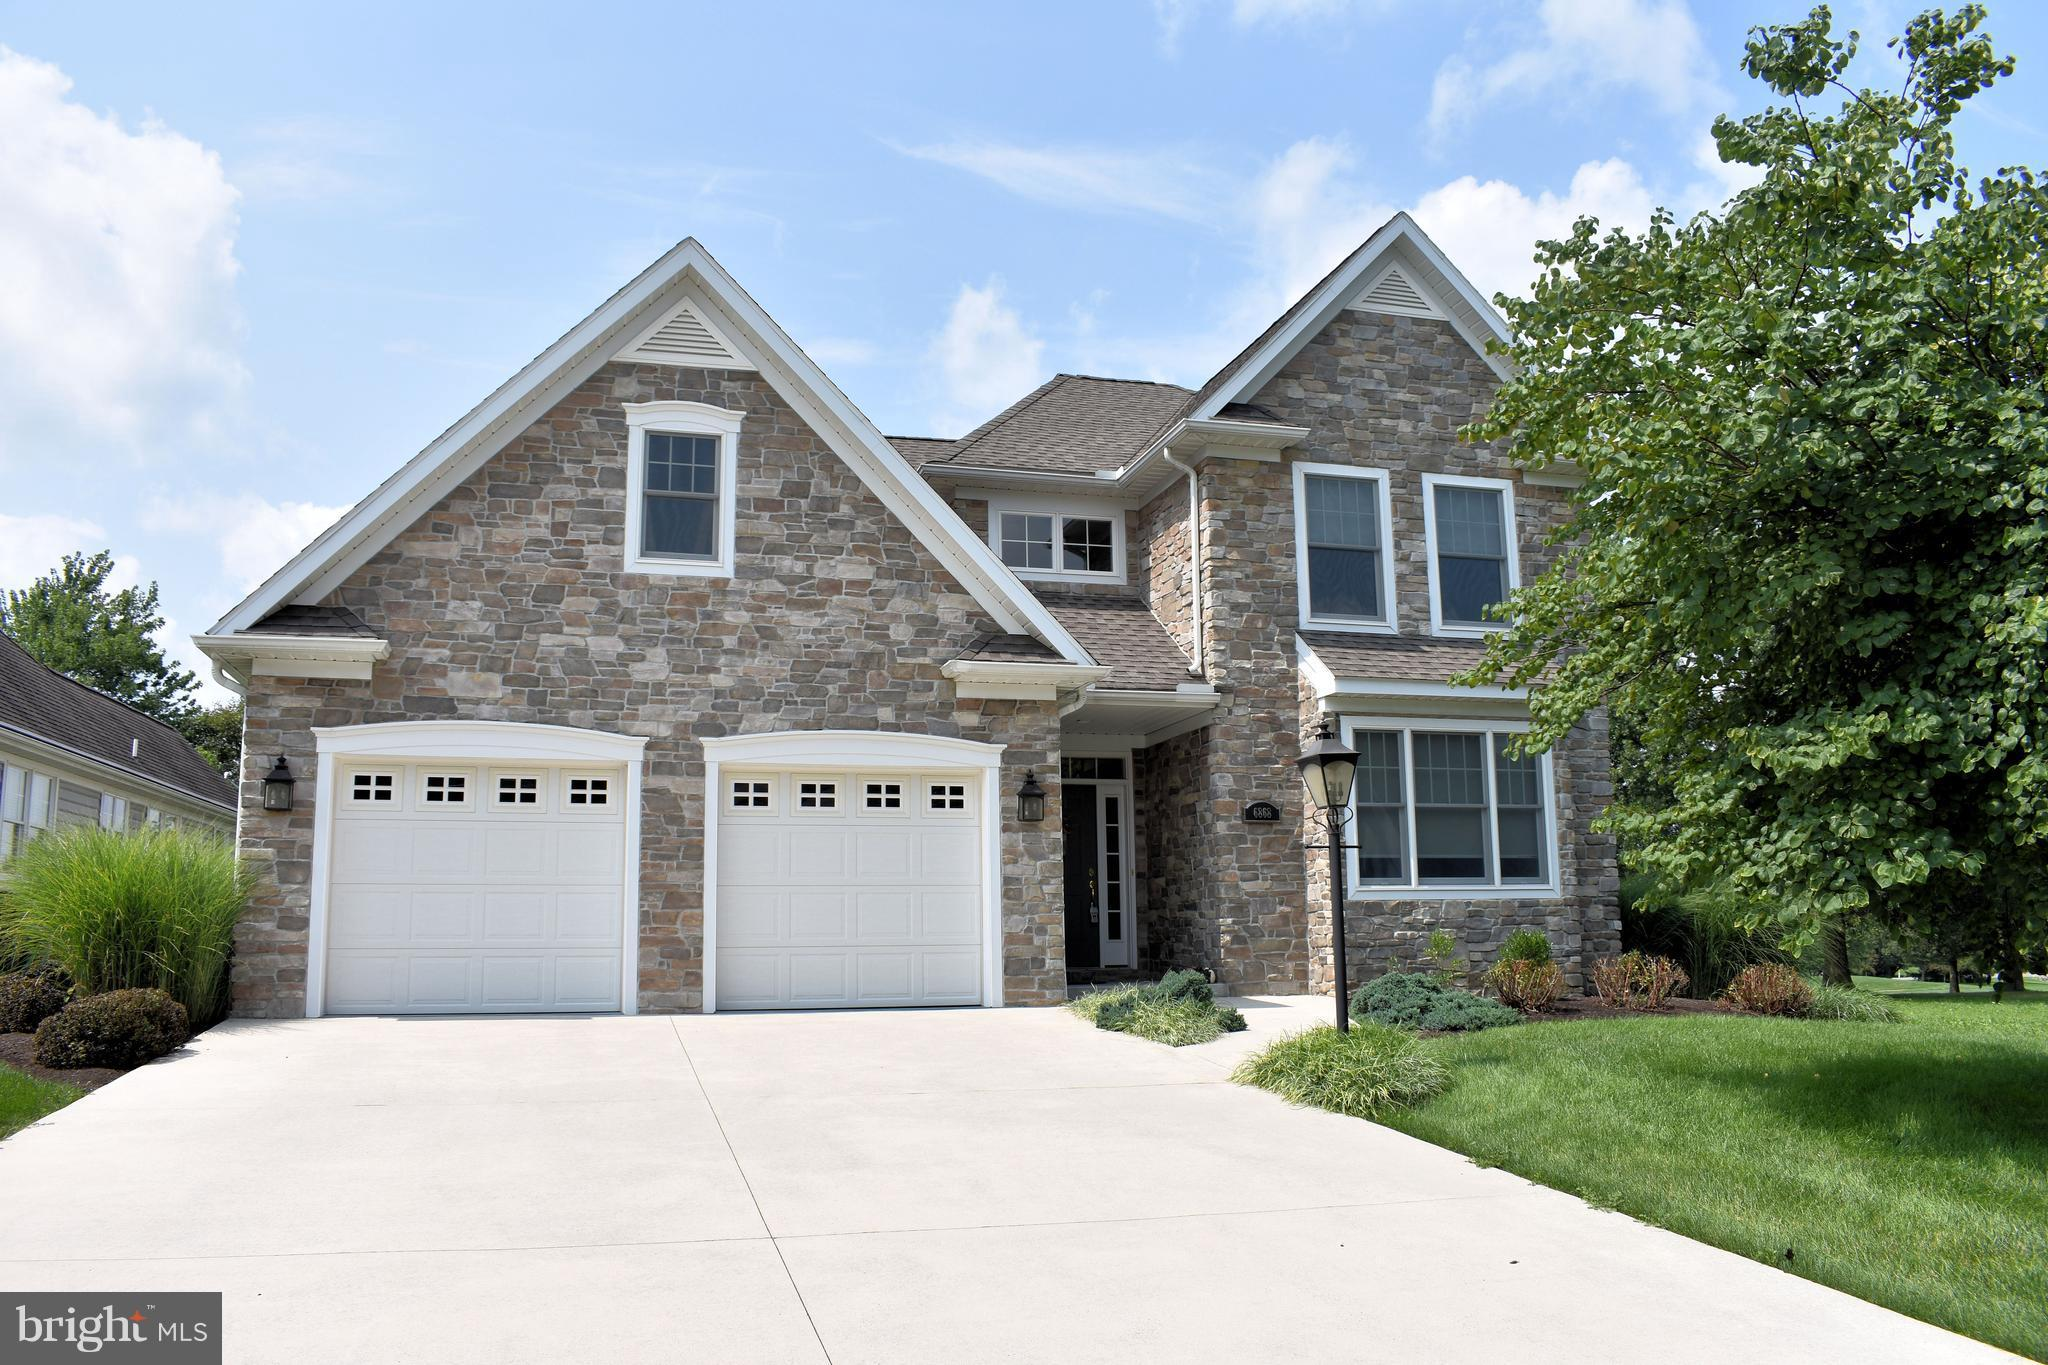 6868 OLD COURSE ROAD, FAYETTEVILLE, PA 17222